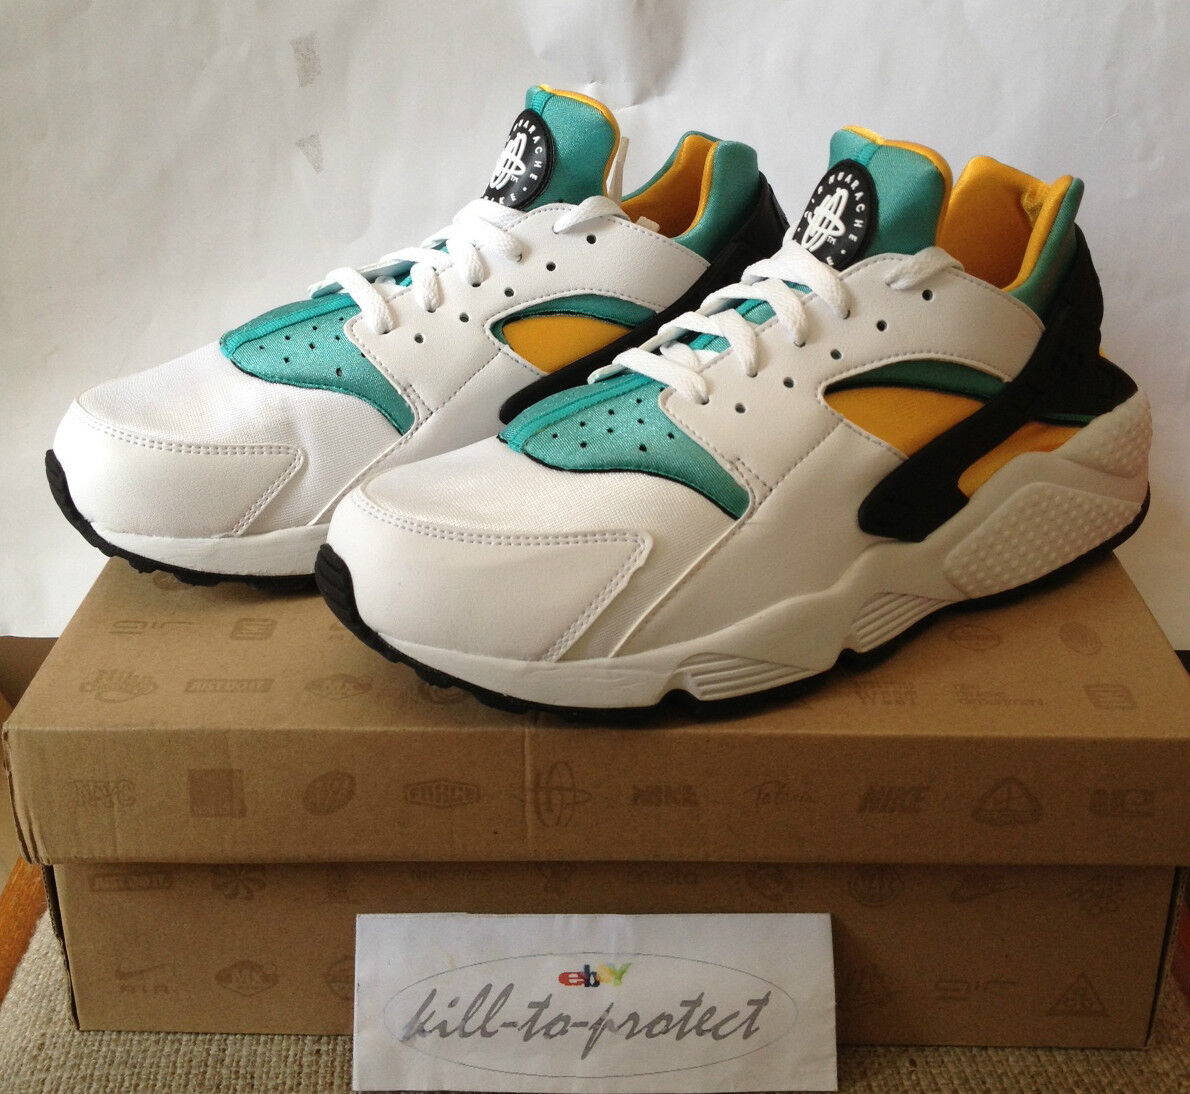 NIKE AIR HUARACHE OG Sz US Green Yellow 318429-137 QS 2013